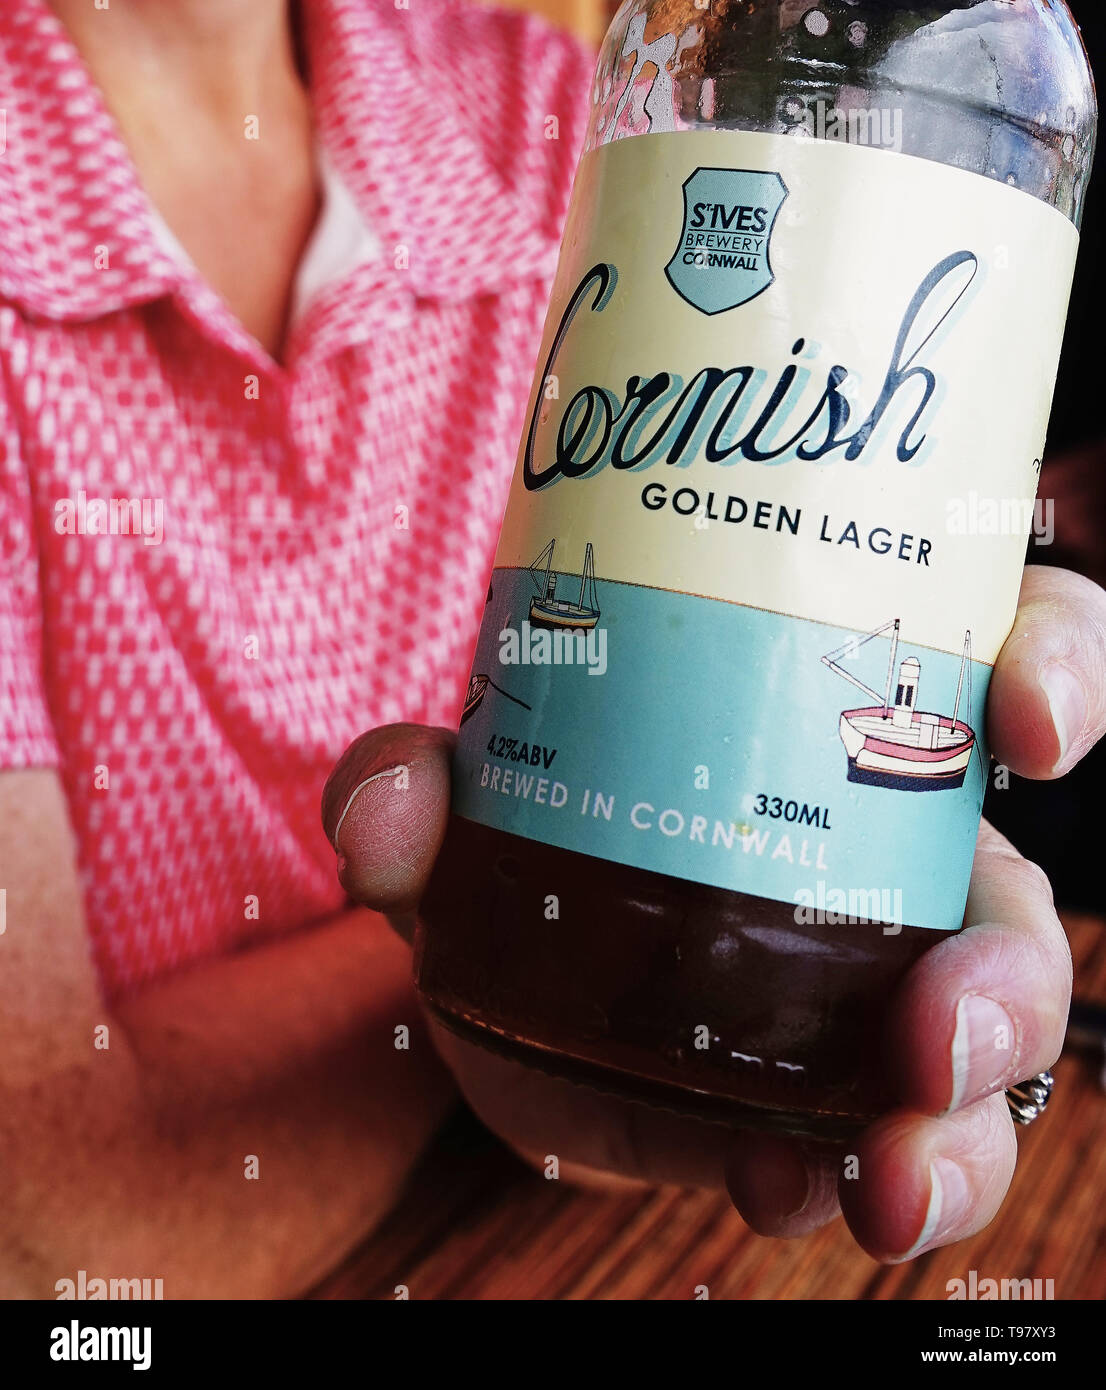 Close-up of Bottle of Cornish Golden Lager craft brew from